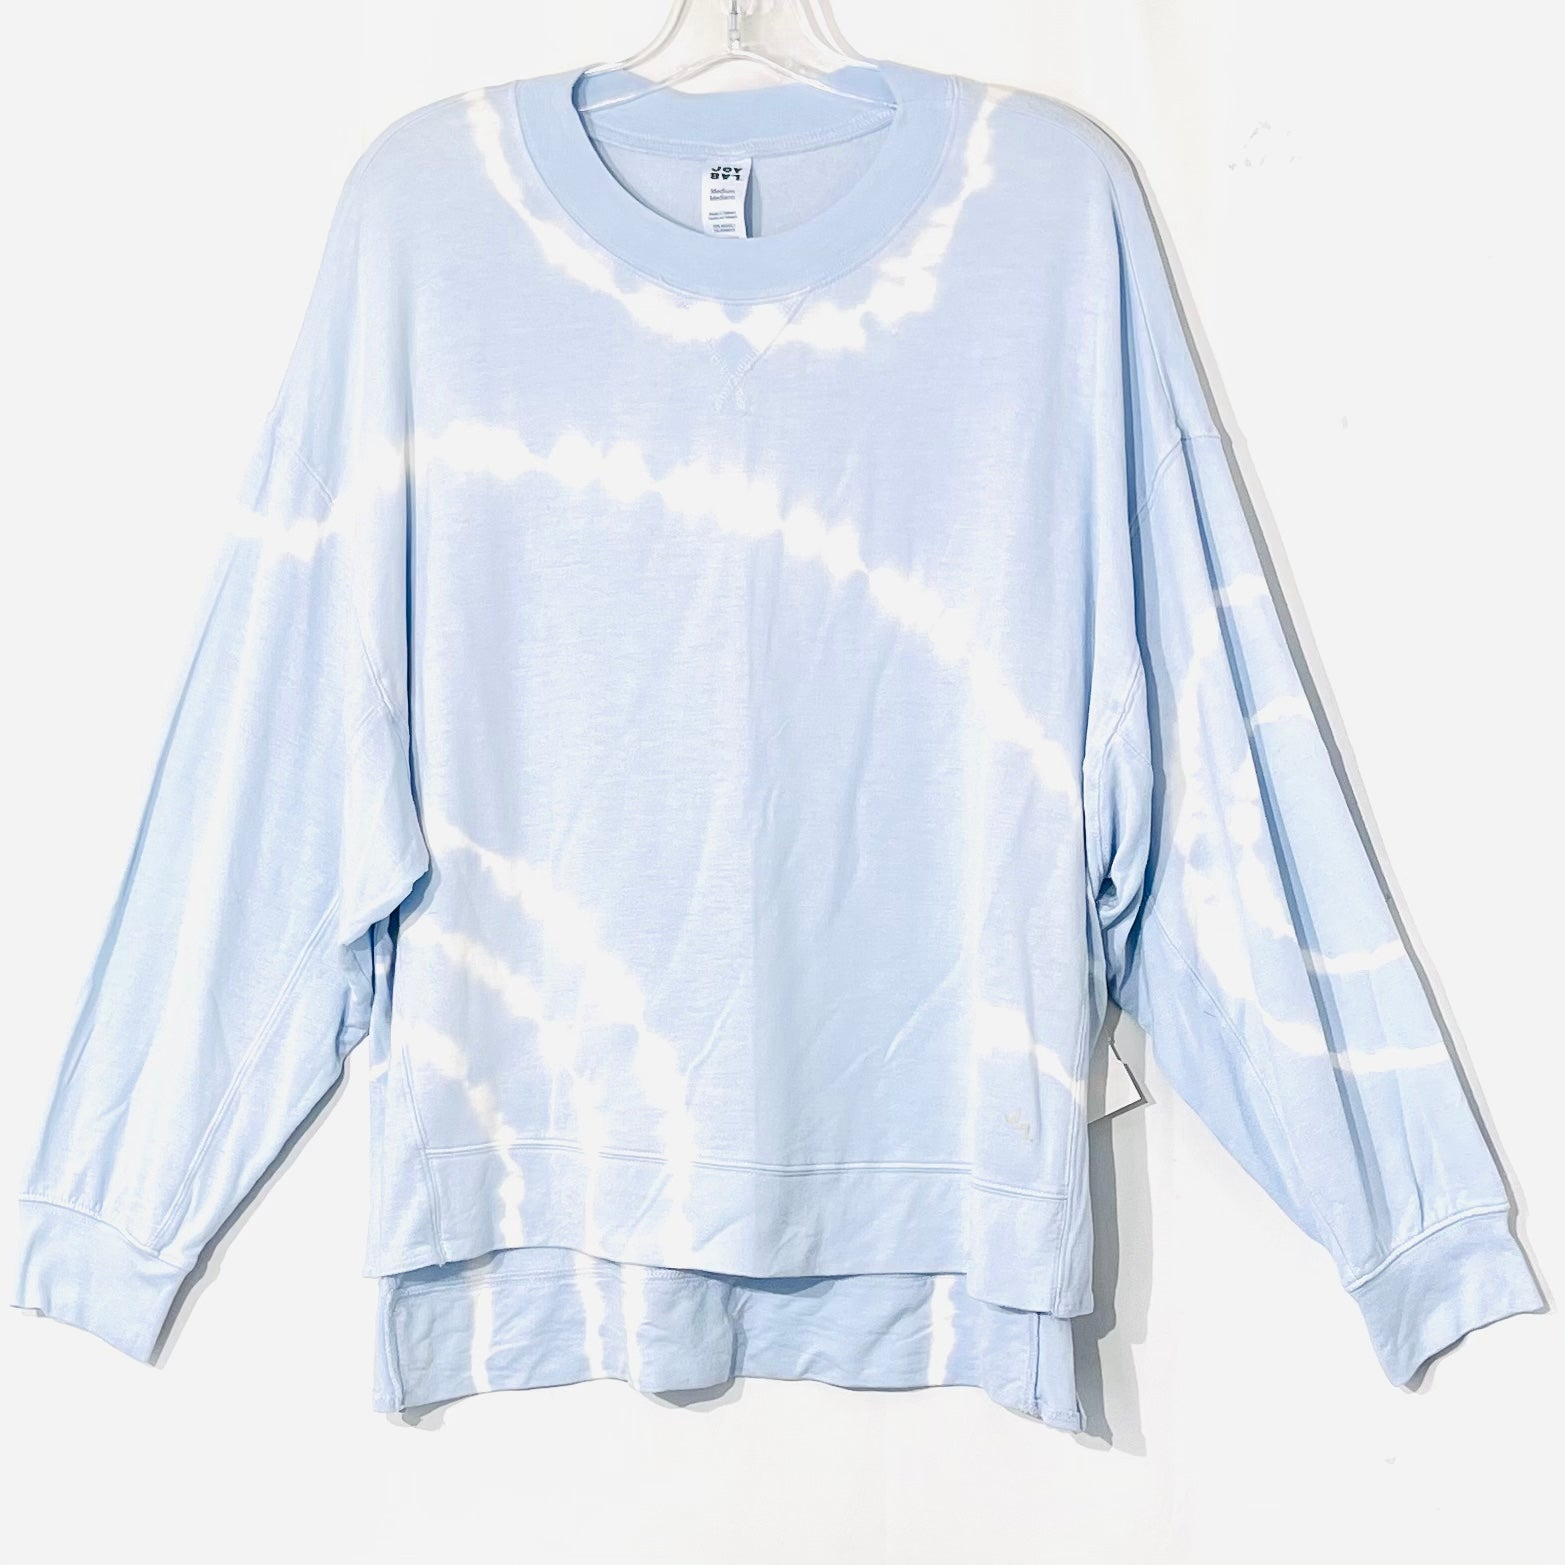 Primary Photo - BRAND: JOY LAB <BR>STYLE: TOP LONG SLEEVE <BR>COLOR: TIE DYE <BR>SIZE: M <BR>SKU: 262-26275-71889